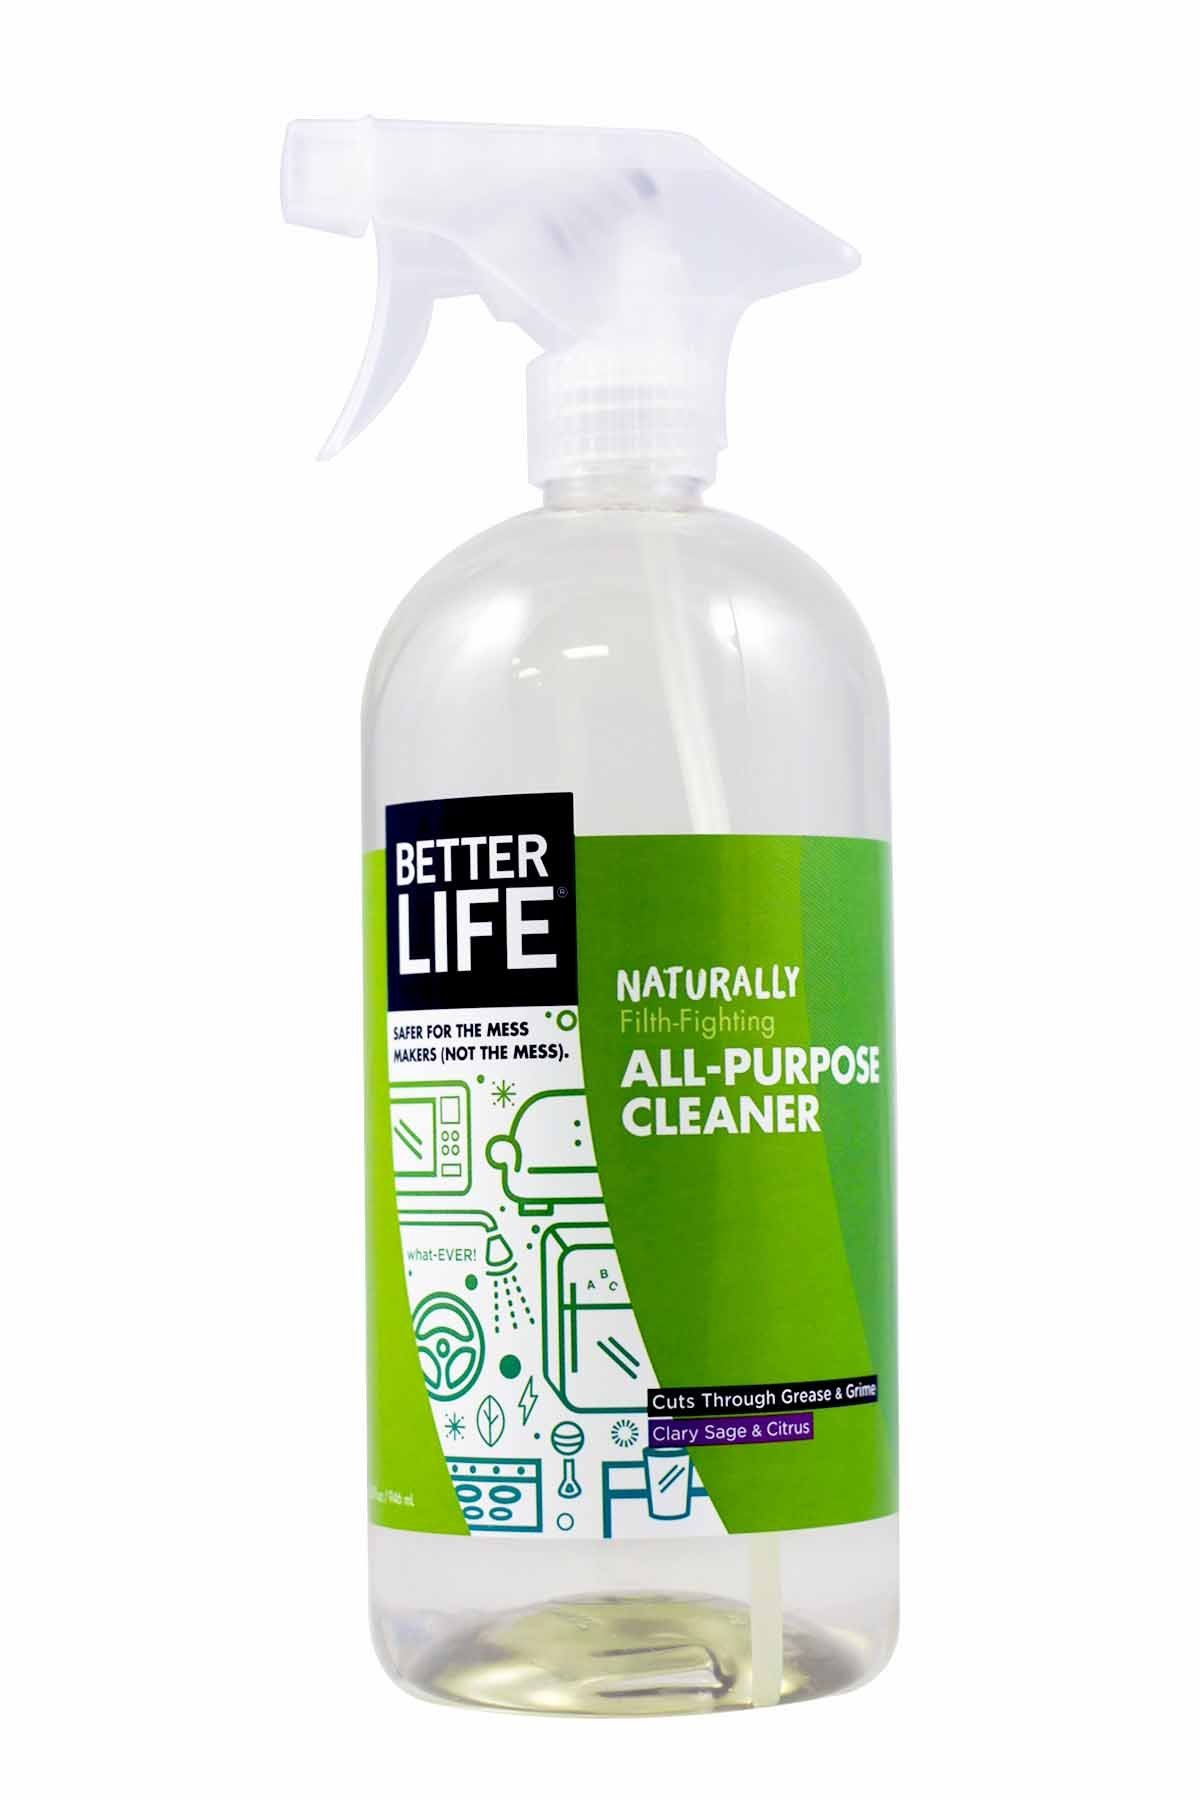 Better Life Natural All-Purpose Cleaner, Safe Around Kids & Pets, Clary Sage & Citrus, 32 Ounces (Pack of 2)